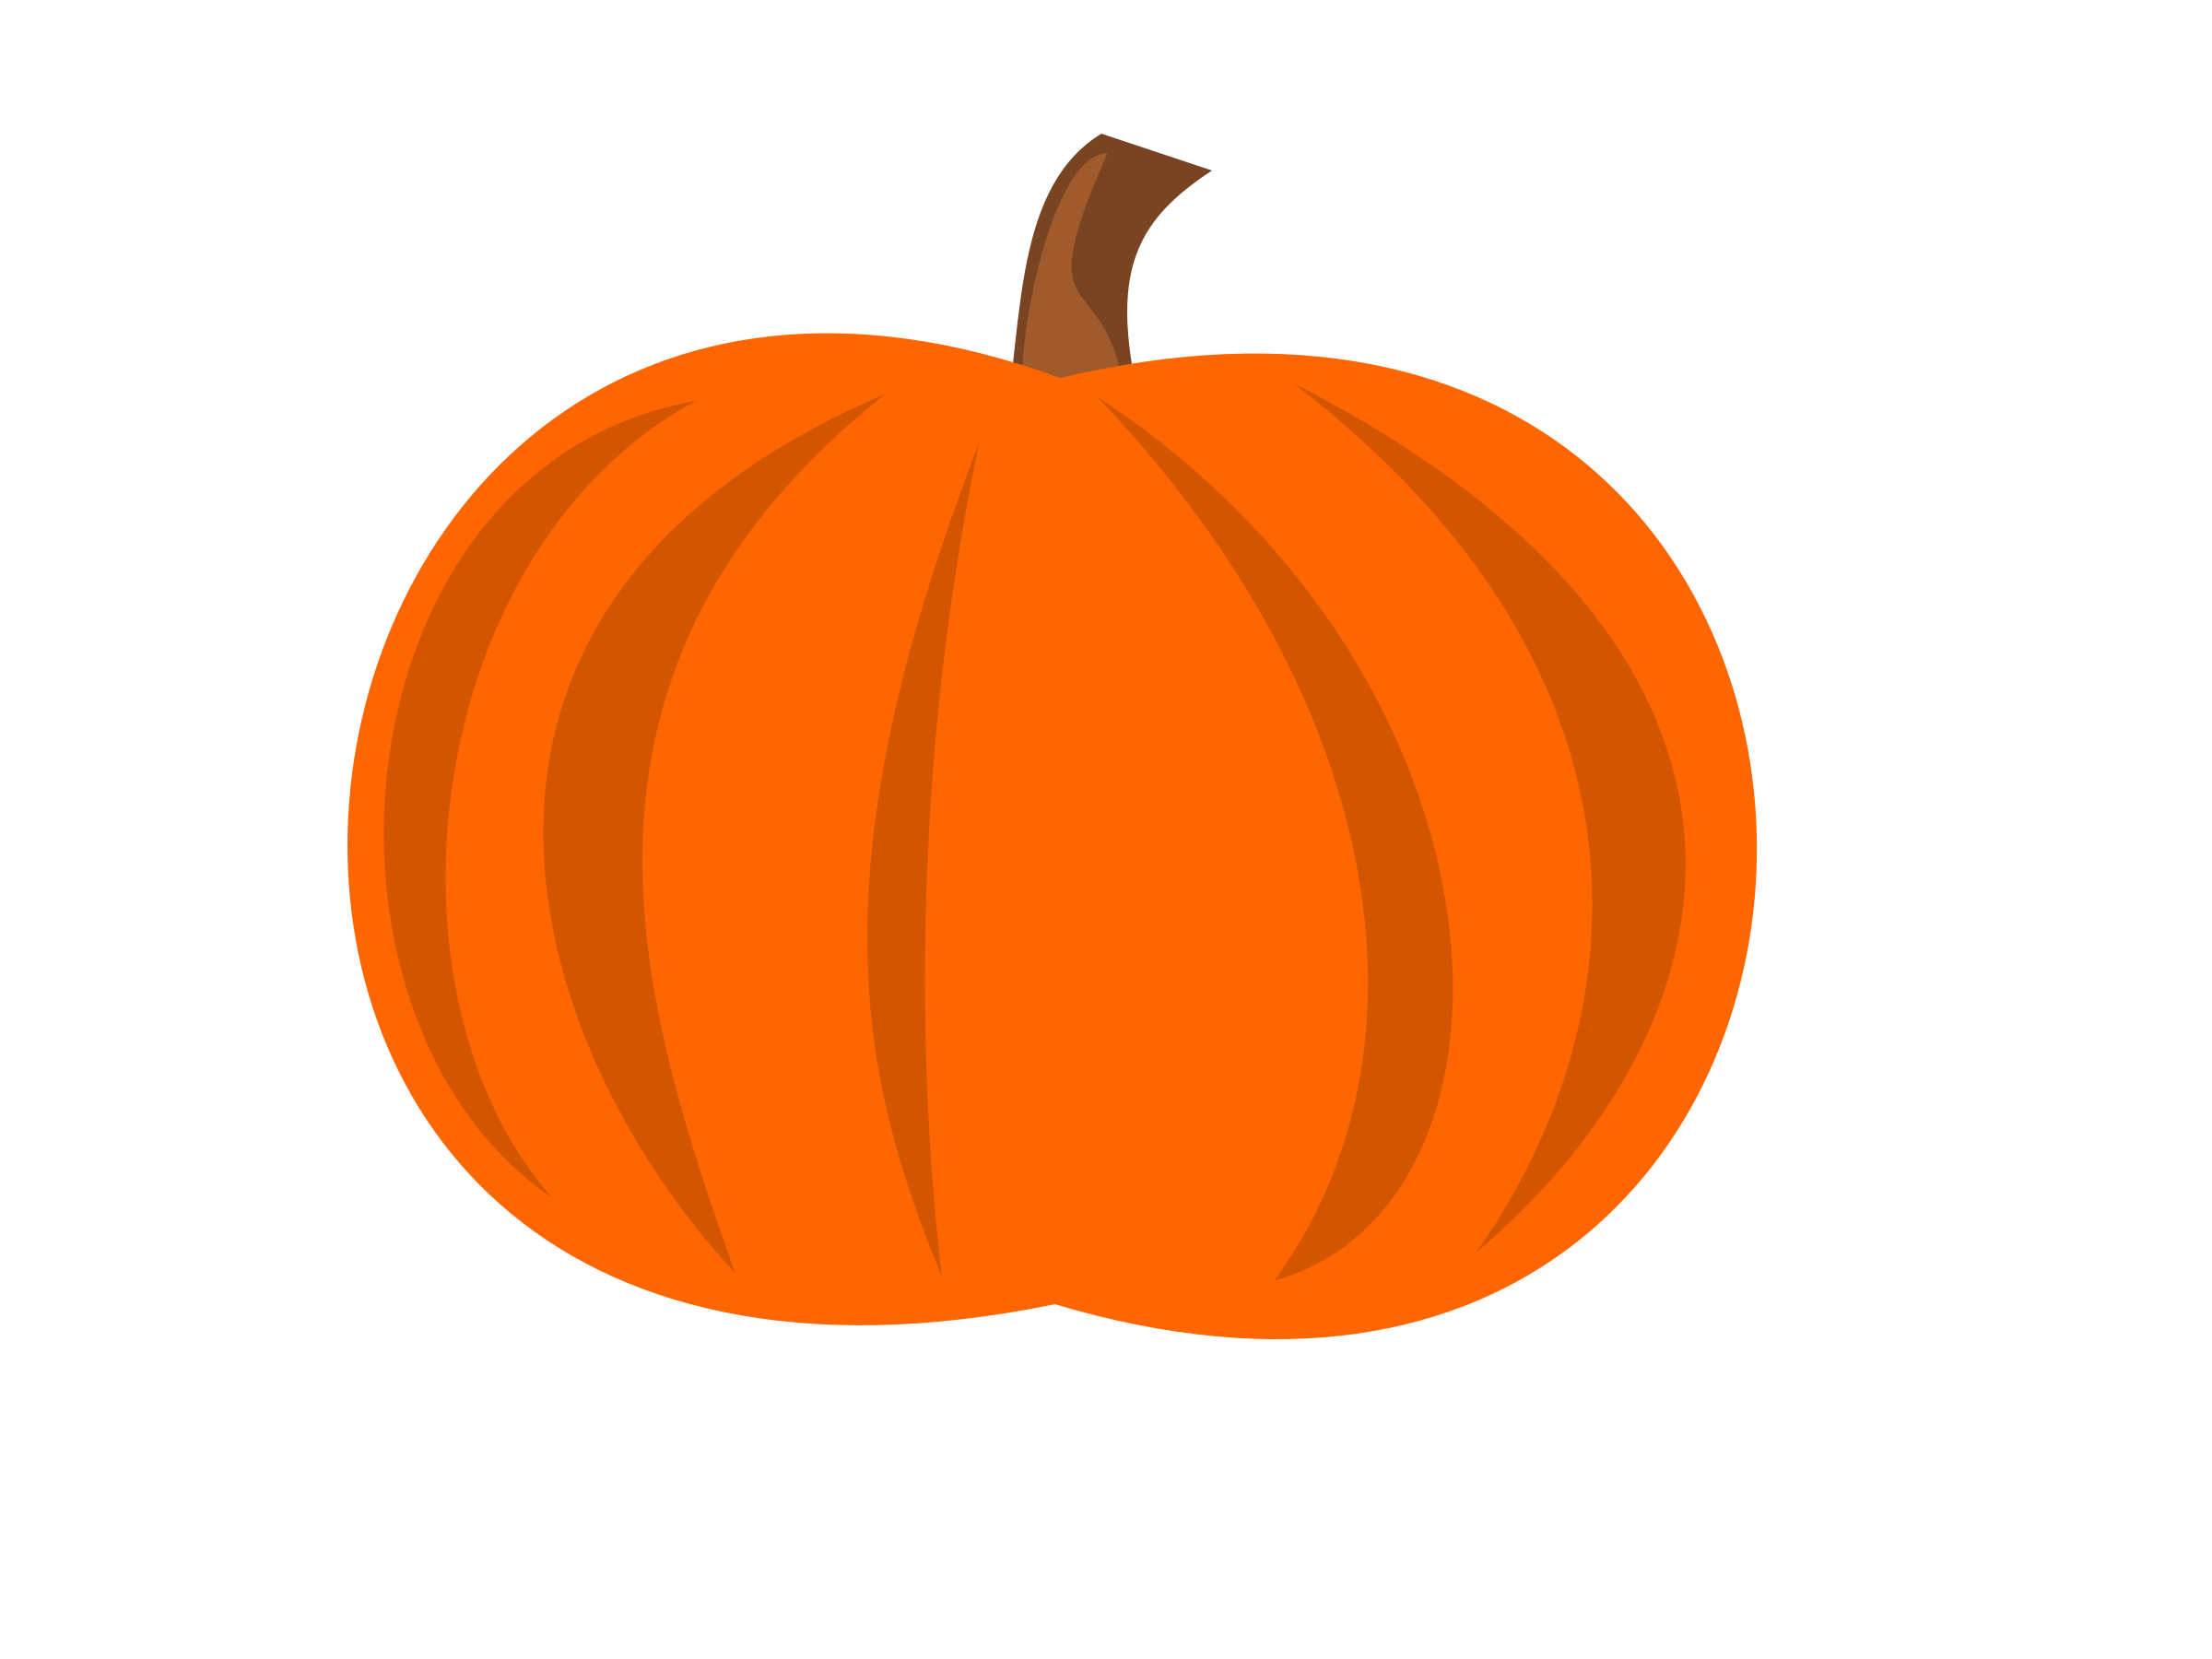 Pie clipart pumpkin spice. Of a clipartmonk free